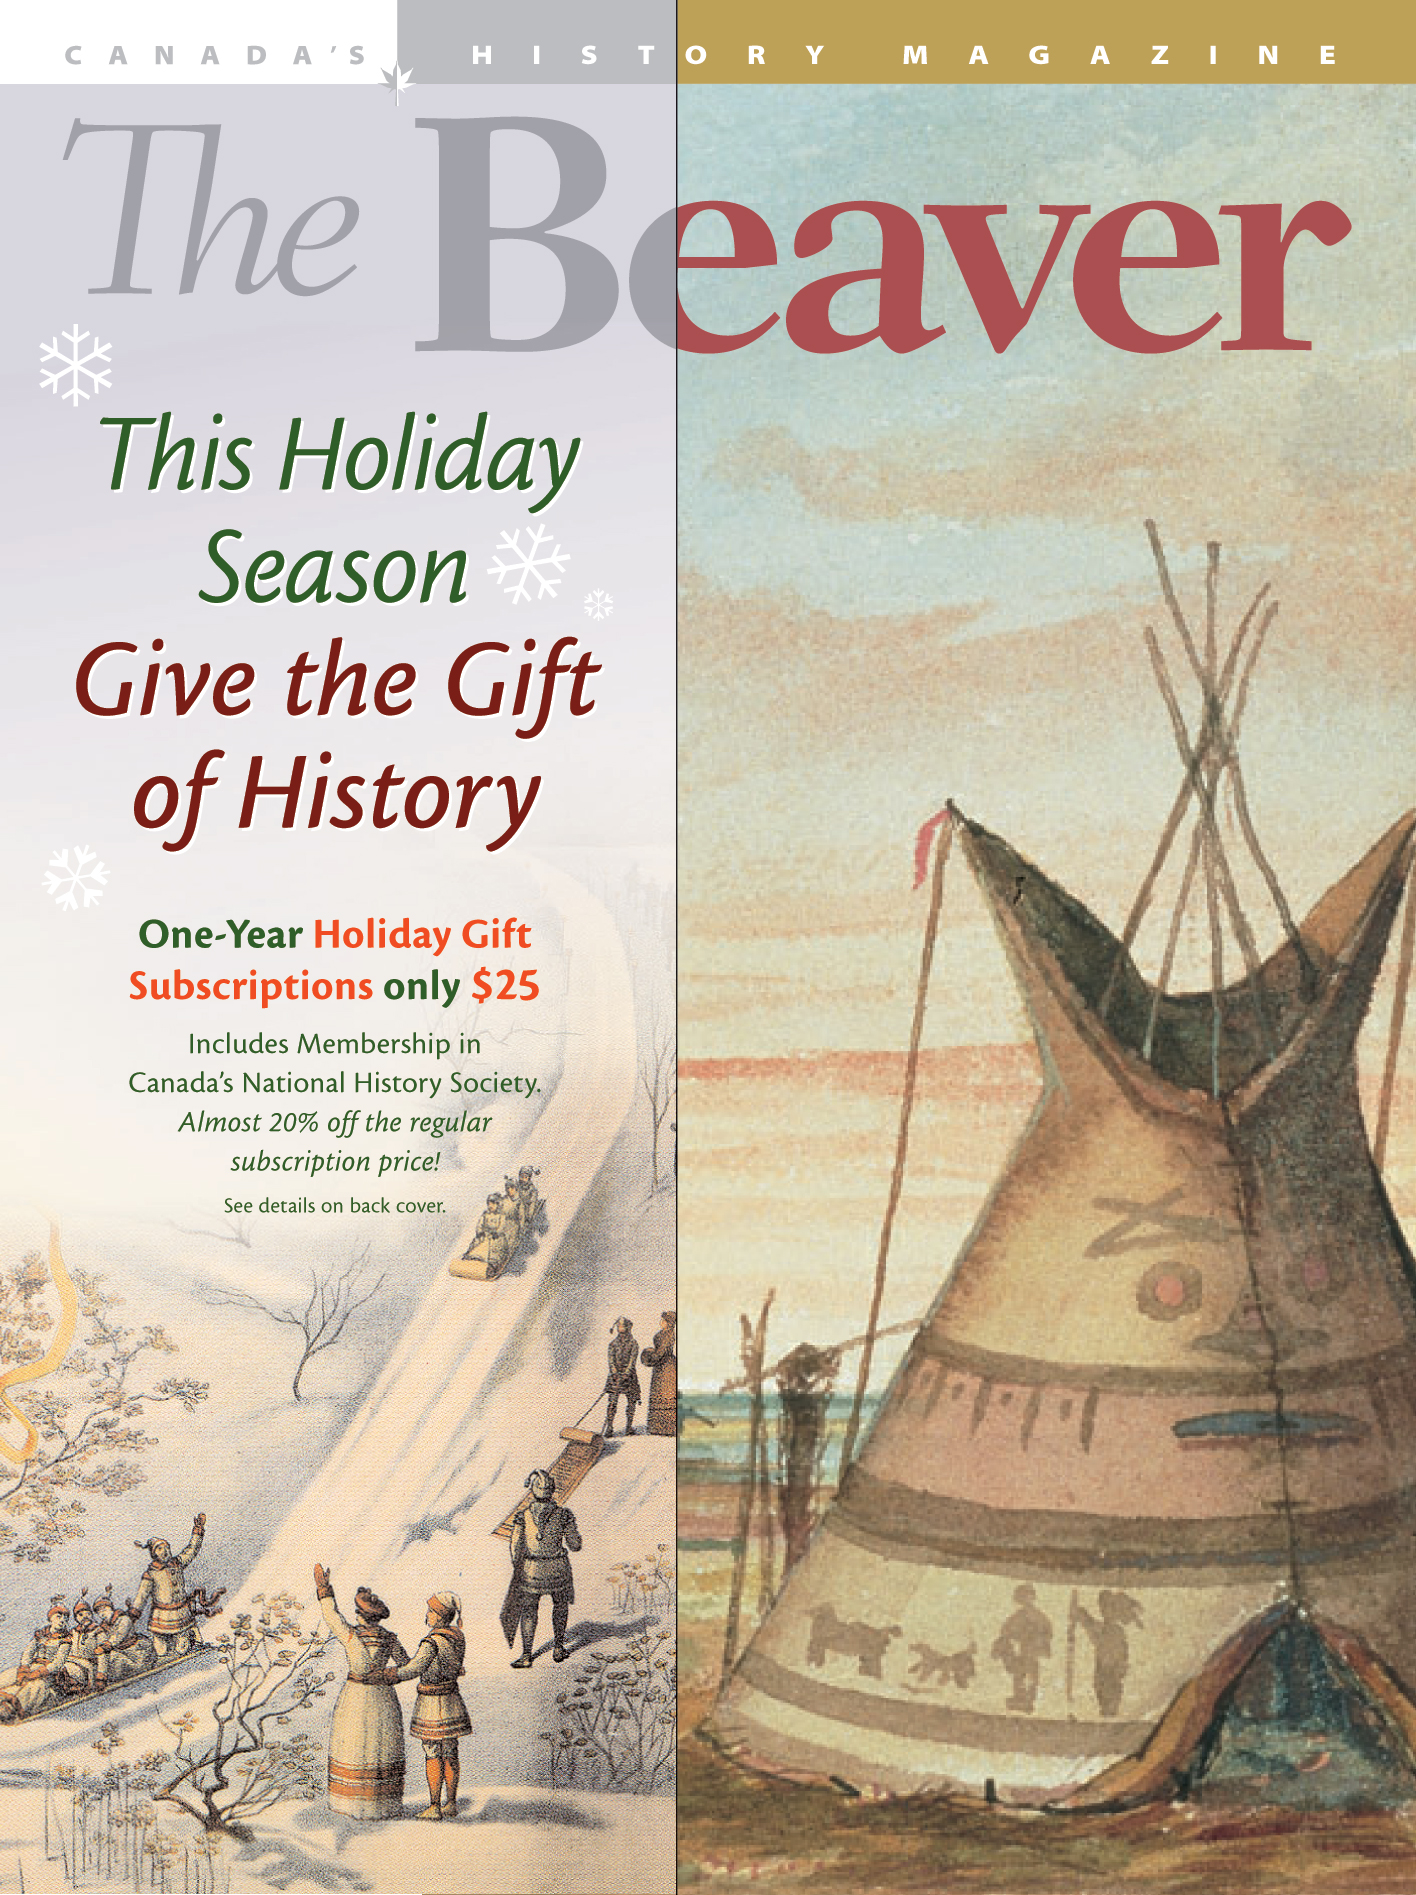 The 'over-cover' folded around the December issue of  The Beaver  offering a Christmas subscription discount